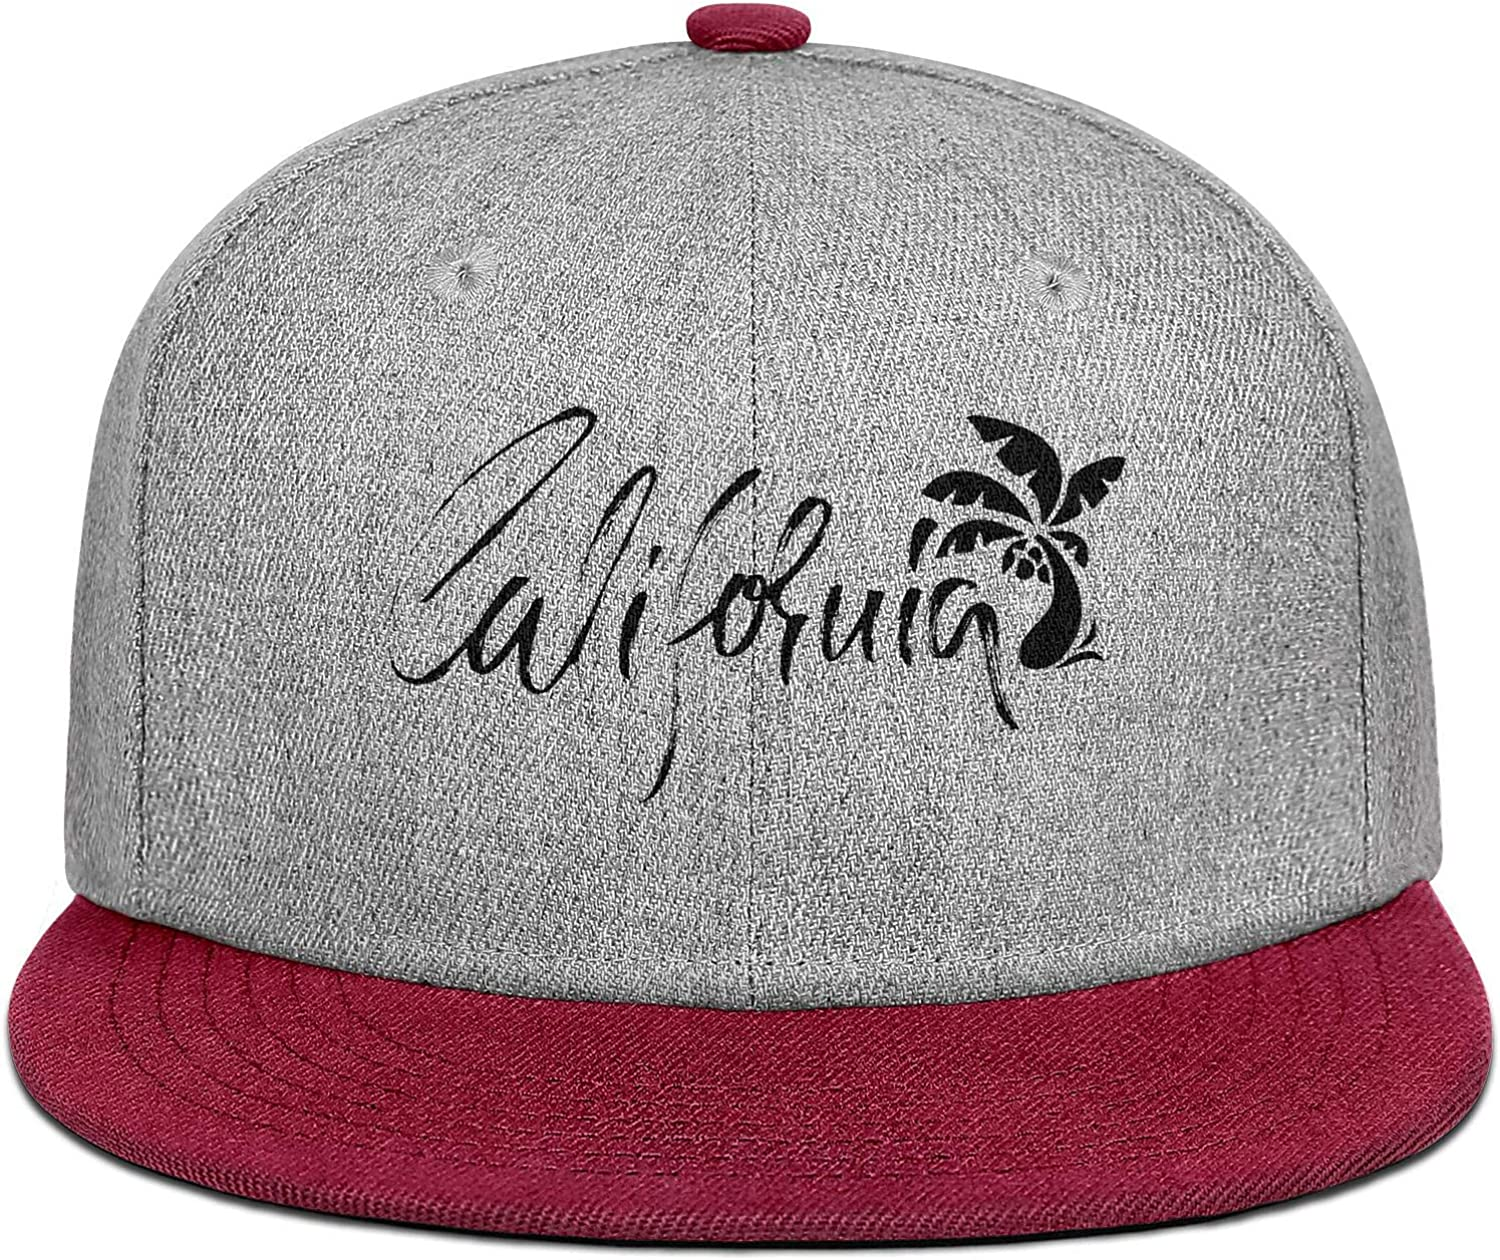 FYFYOK Mens Womens Trucker Hat California Retro Coconut Palm Logo Snapback One Size Caps